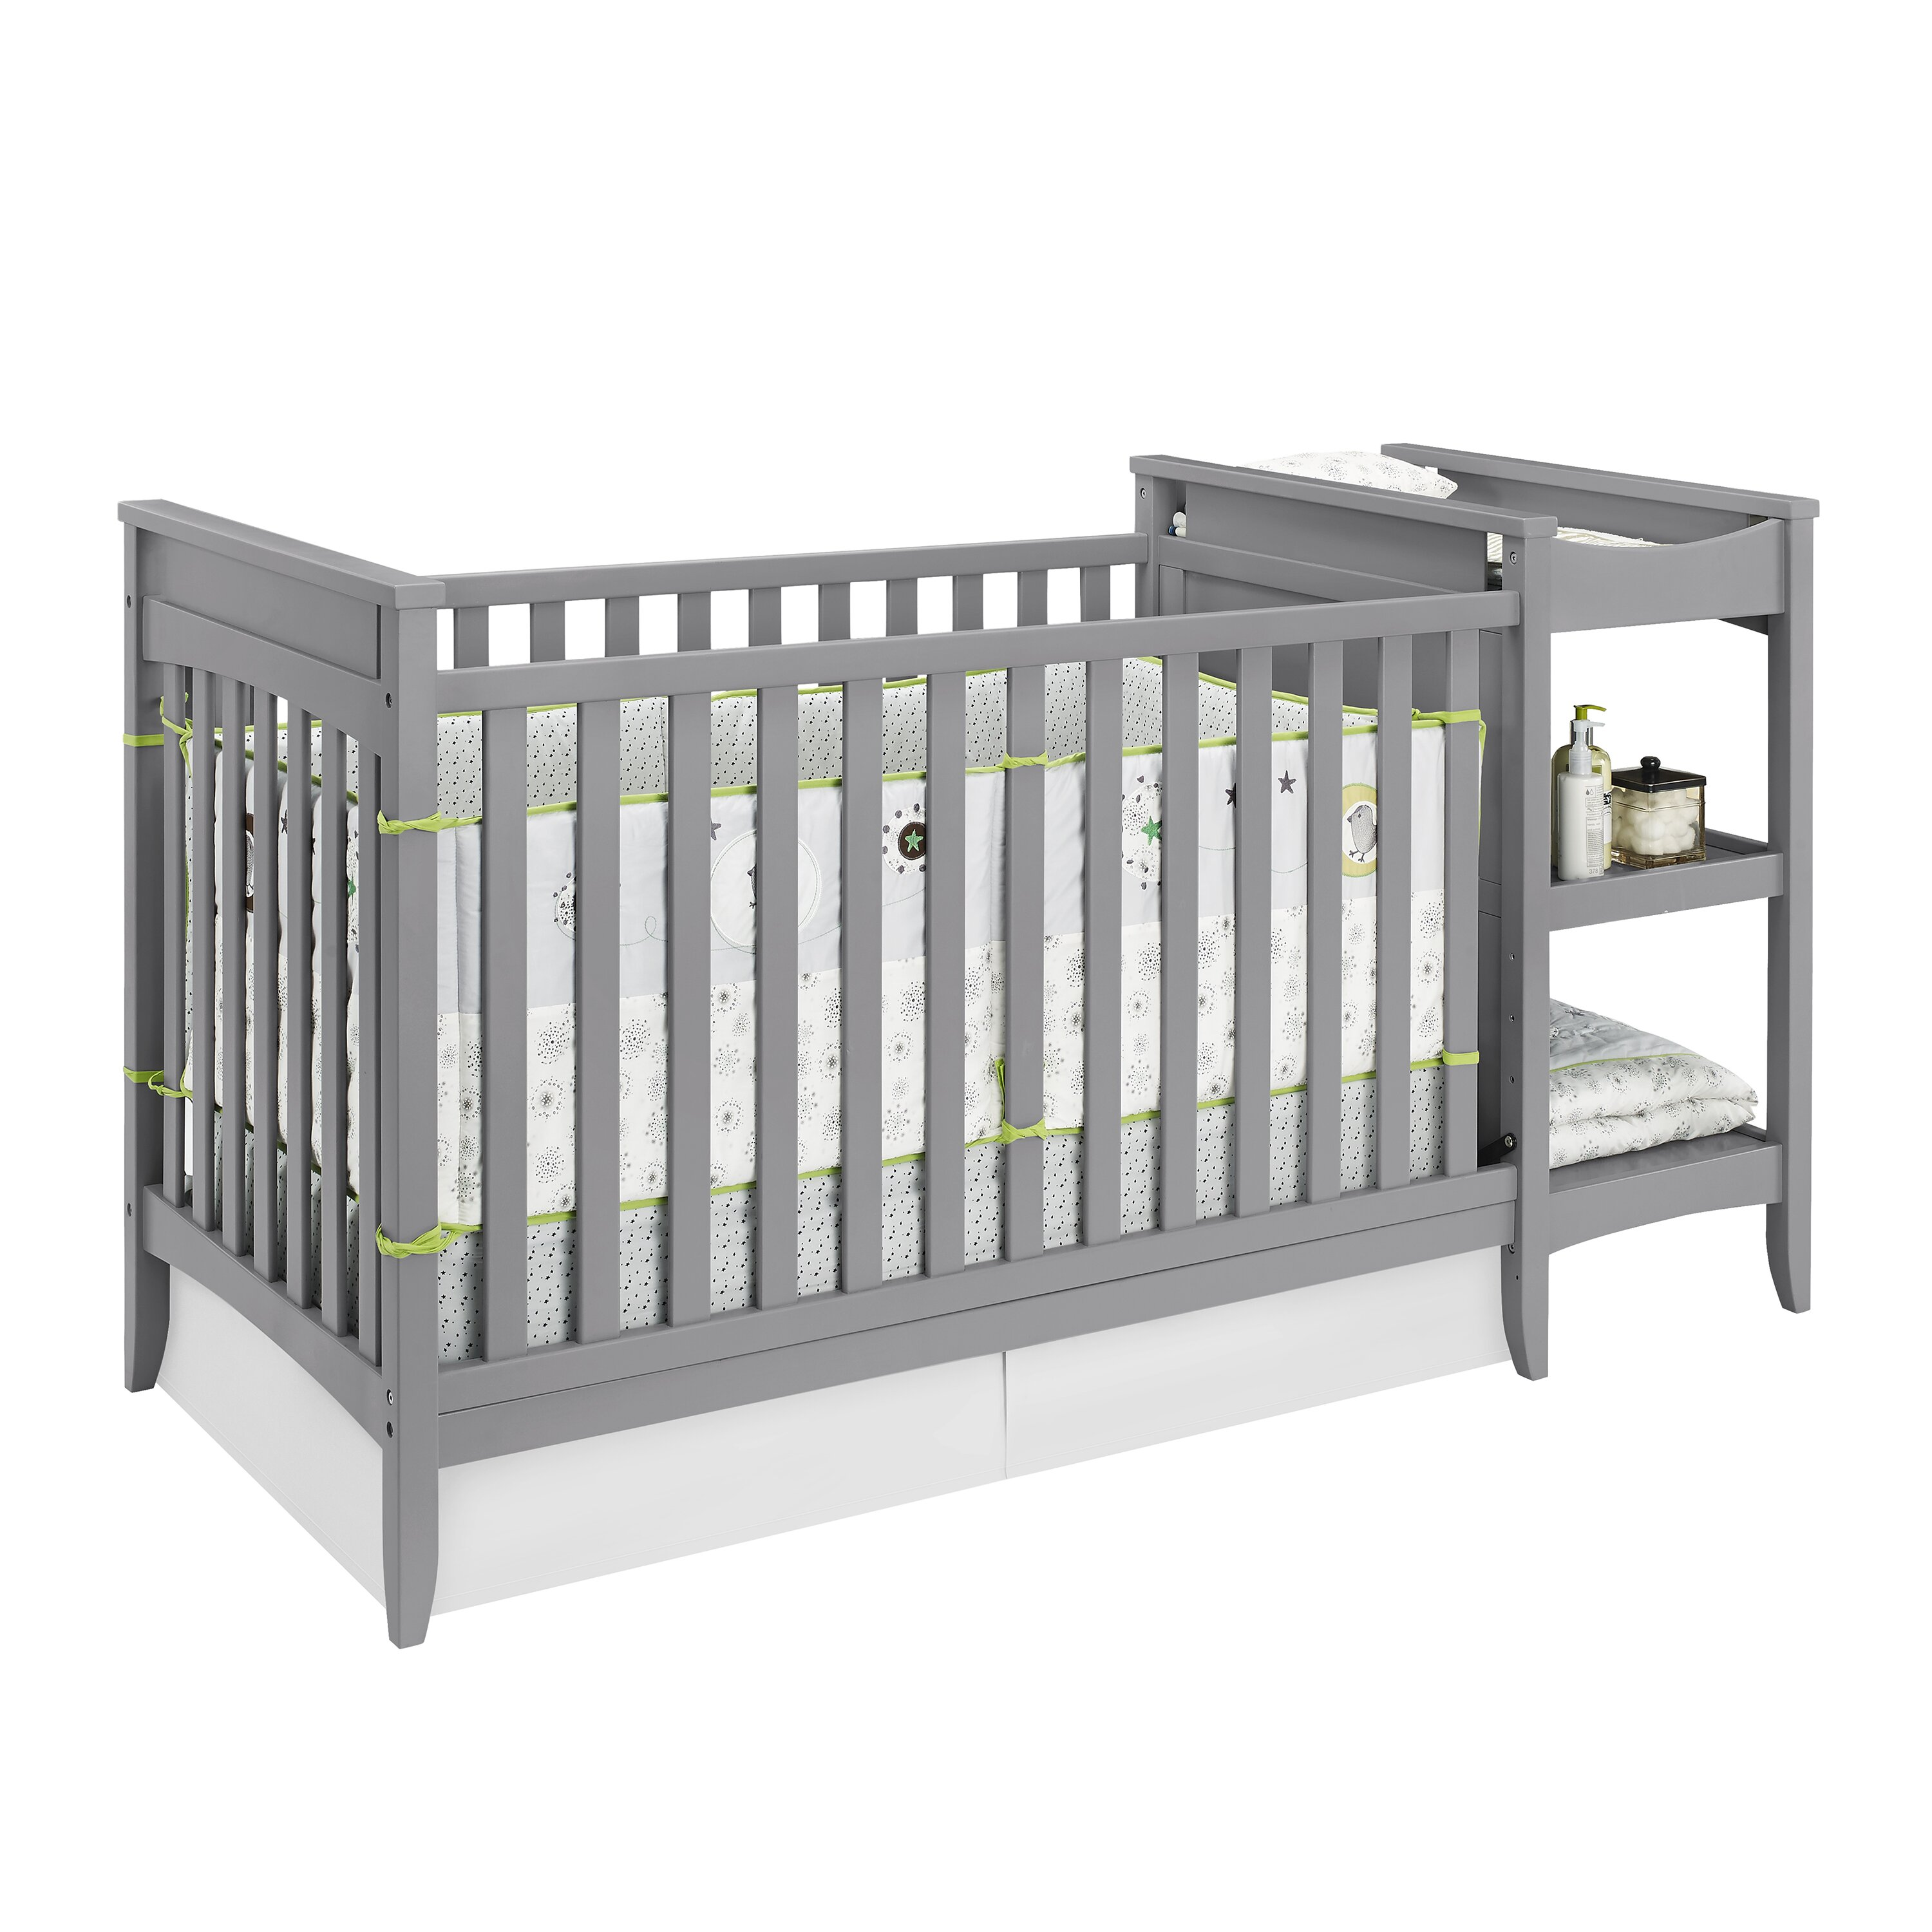 Emma iron crib for sale - Baby Relax Emma 2 In 1 Convertible Crib With Changing Table